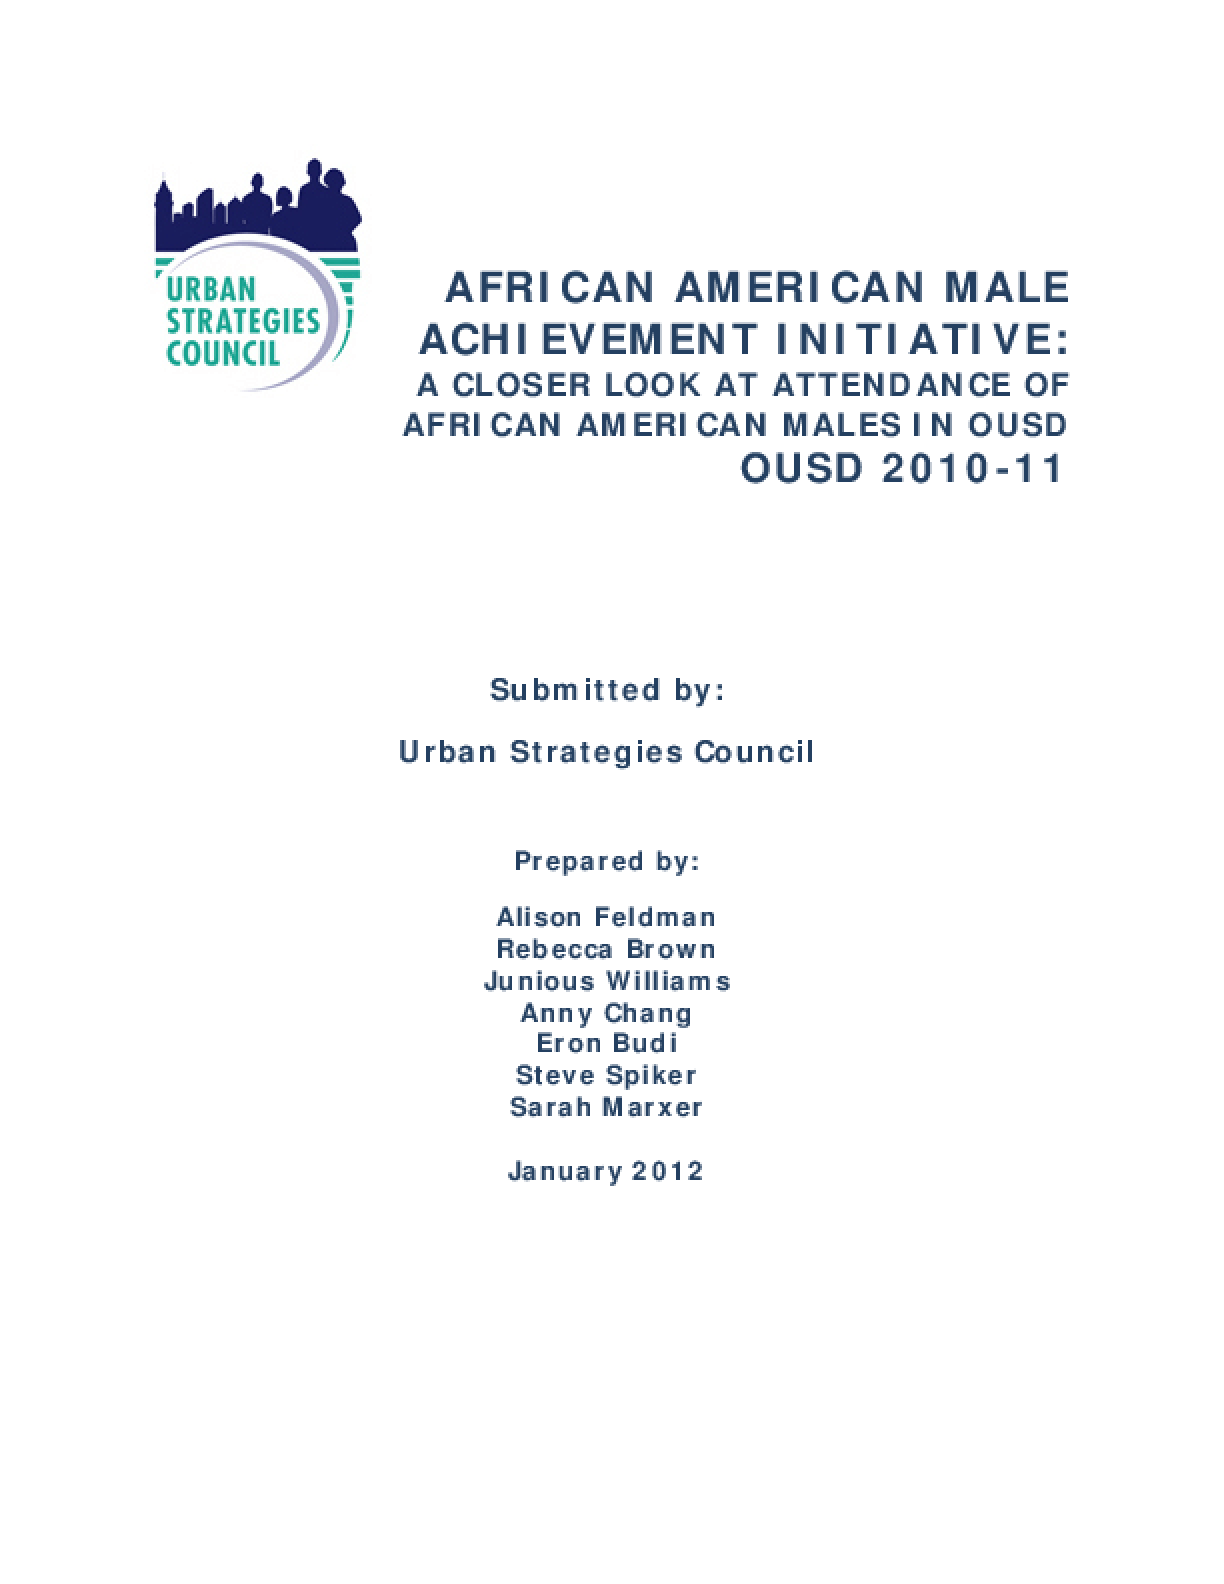 African American Male Achievement Initiative: A Closer Look At Attendance Of African American Males In OUSD